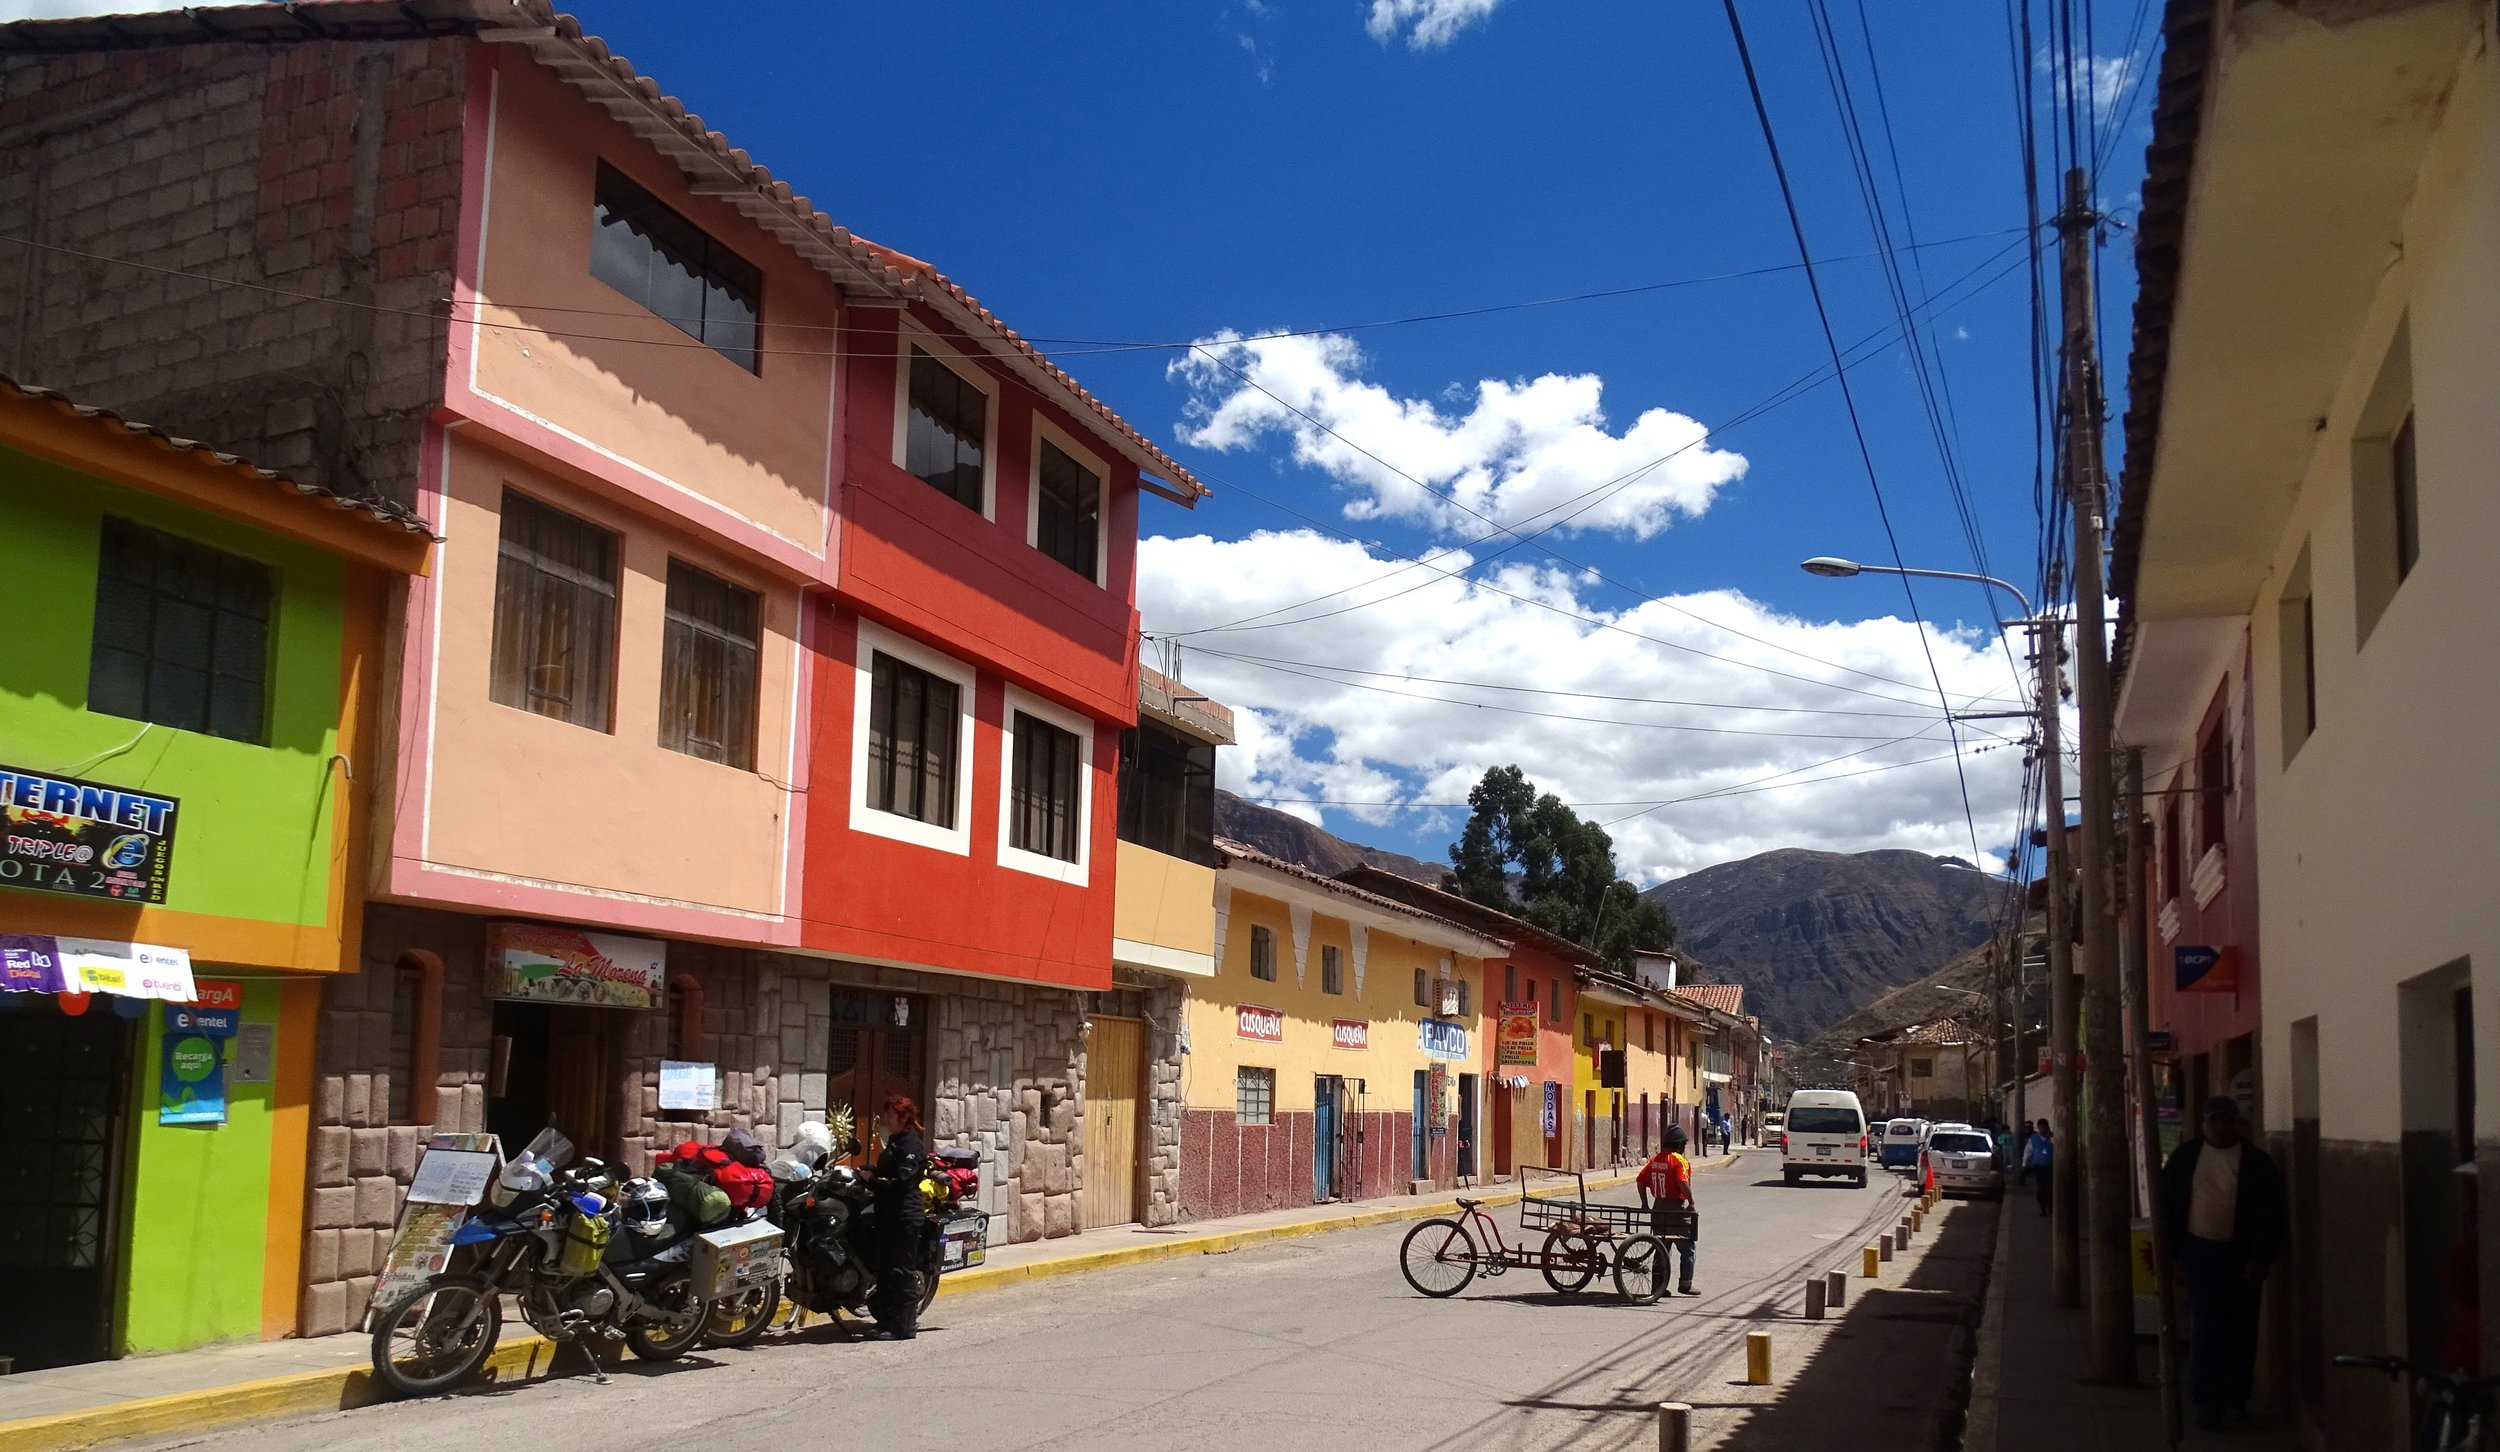 On the way up to Ollantaytambo, the town of Pisac is a great spot to stop for a good lunch.